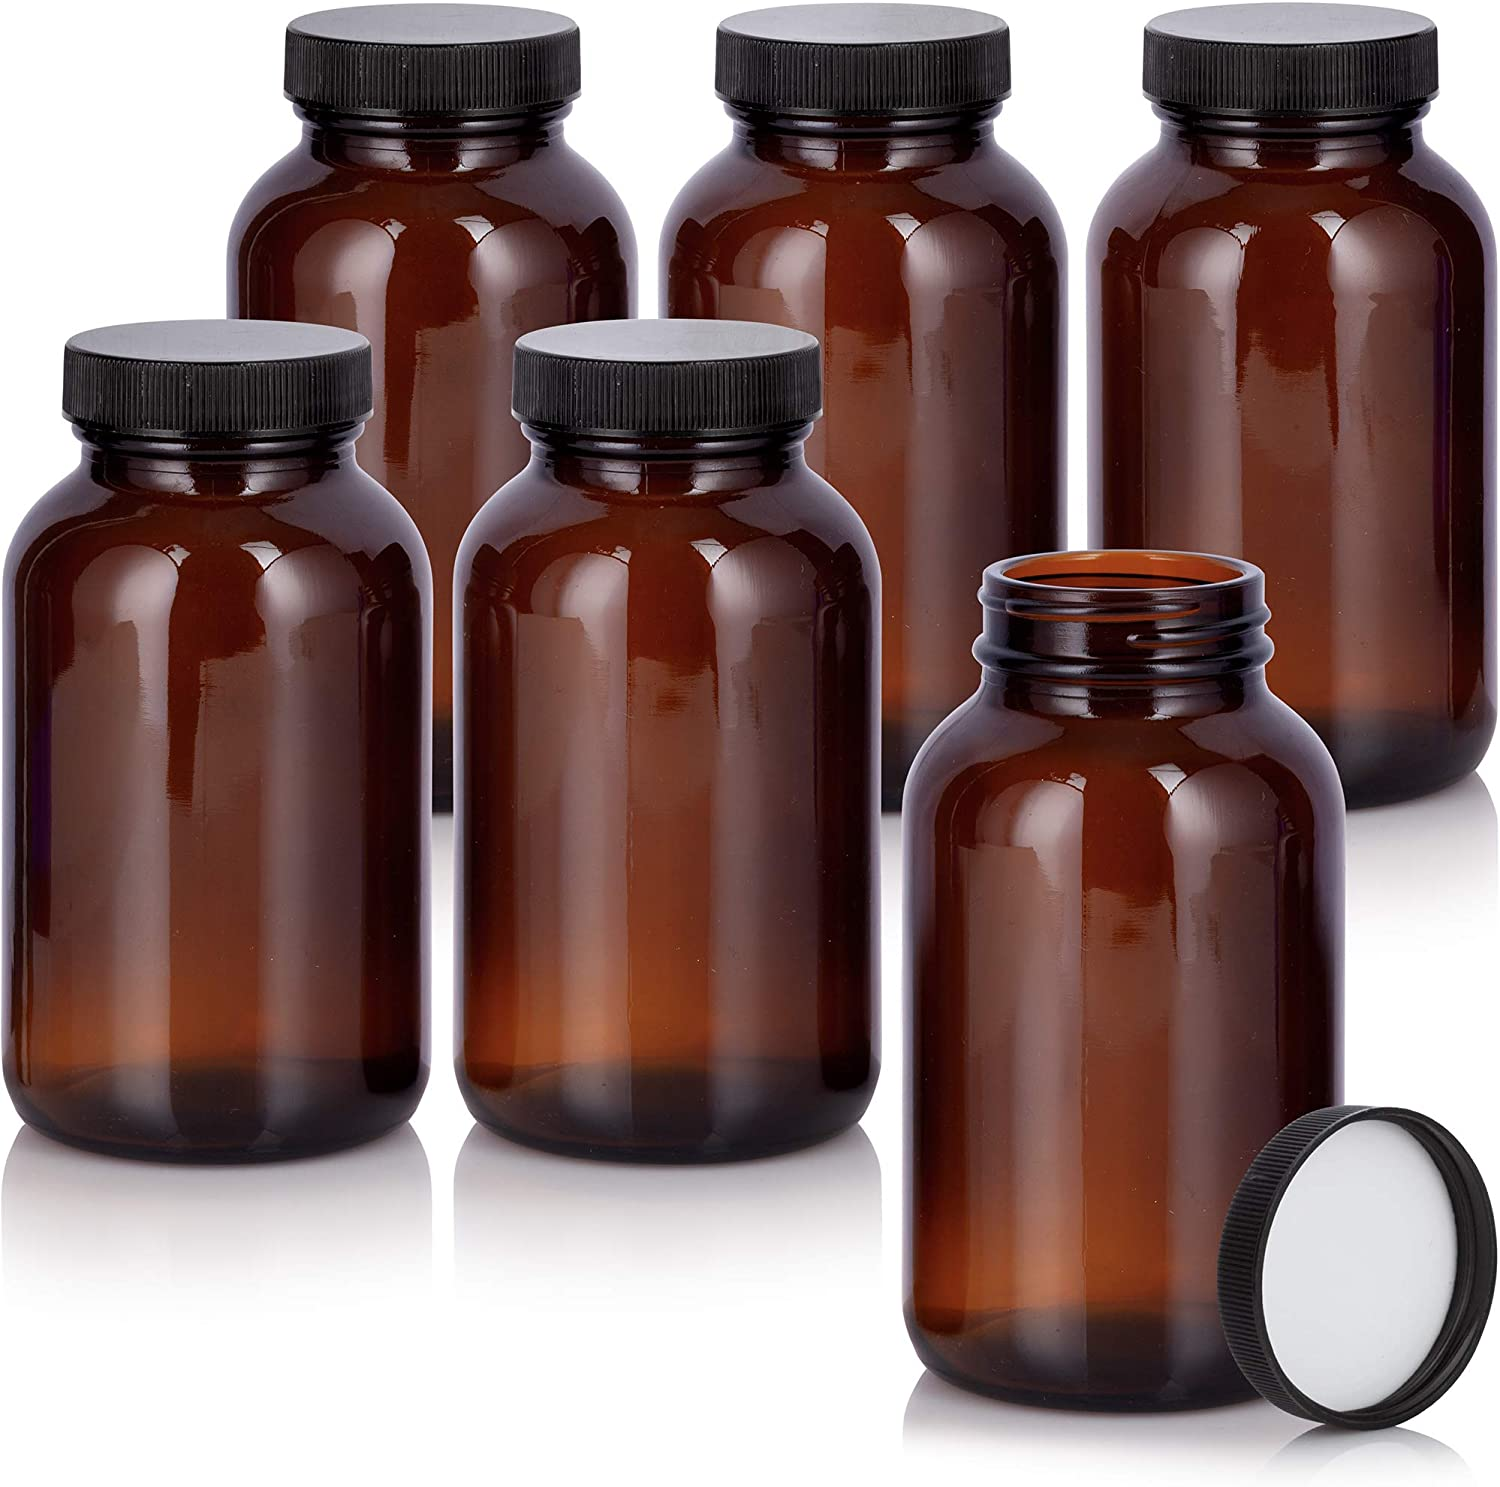 Cash special price Amber 8 oz Glass Packer Bottle Black 6 Ribbed New sales pack with Lid